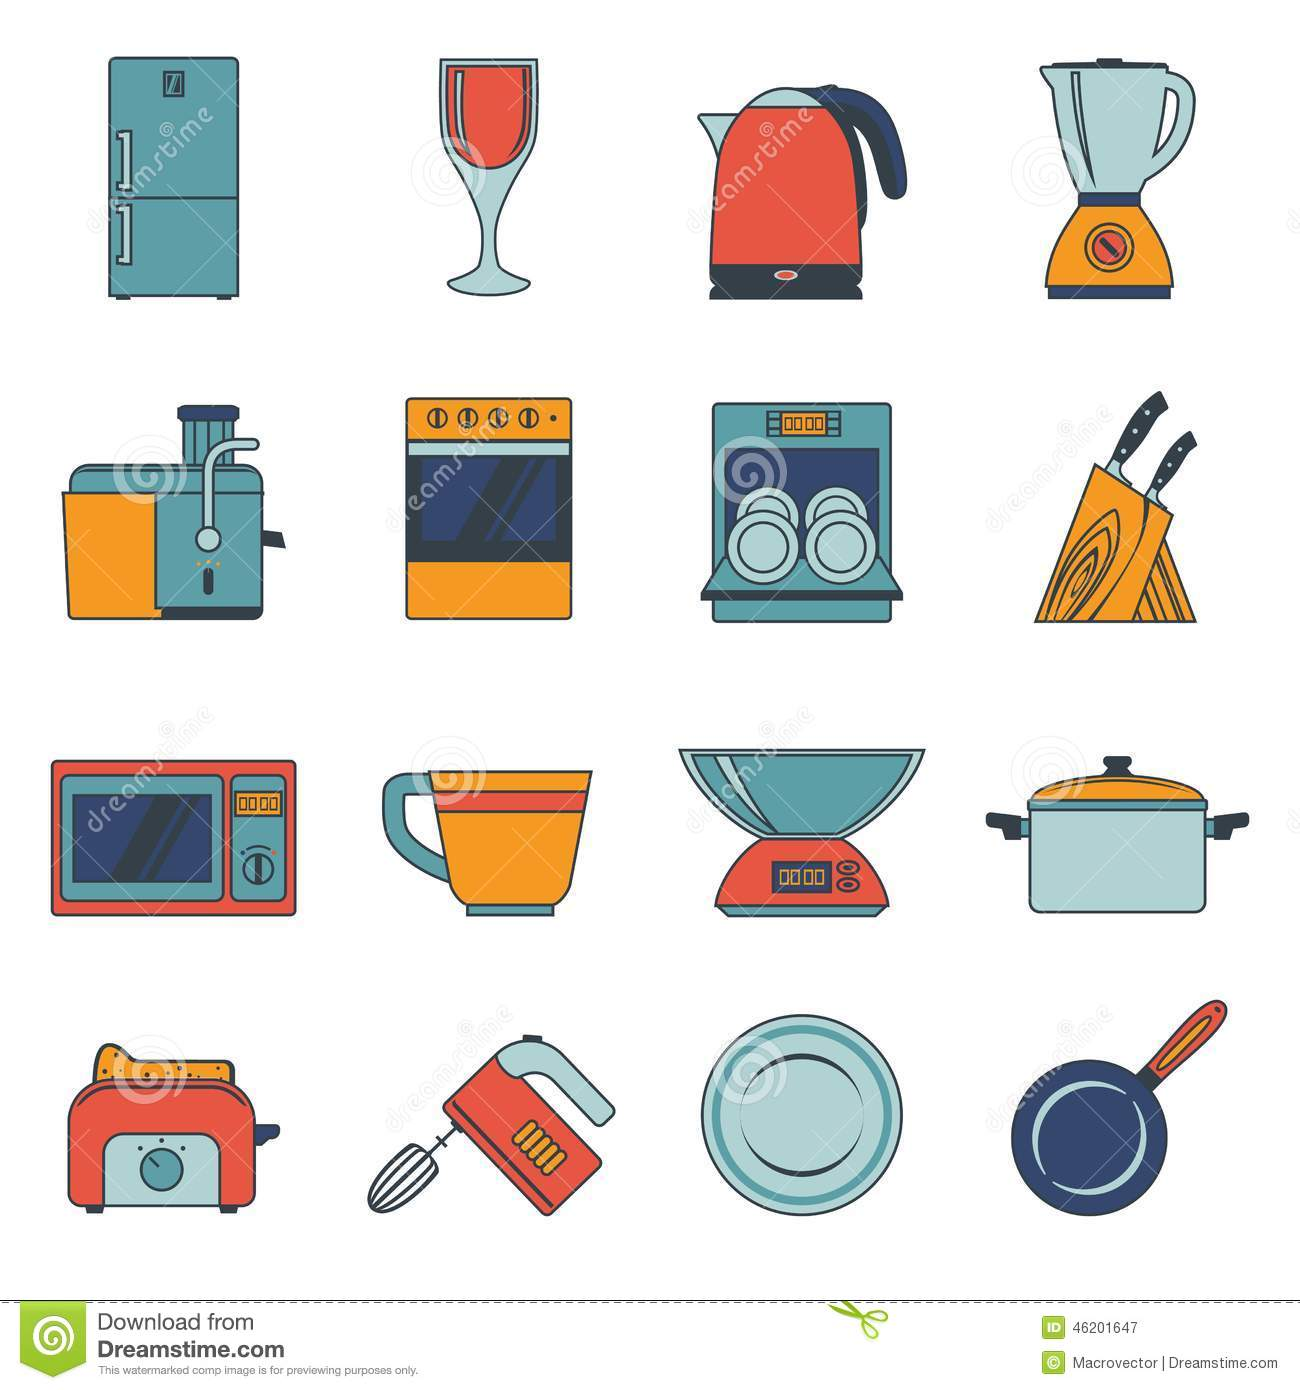 Uncategorized Free Kitchen Appliances set of kitchen appliances flat icons with a stock vector image royalty free photography